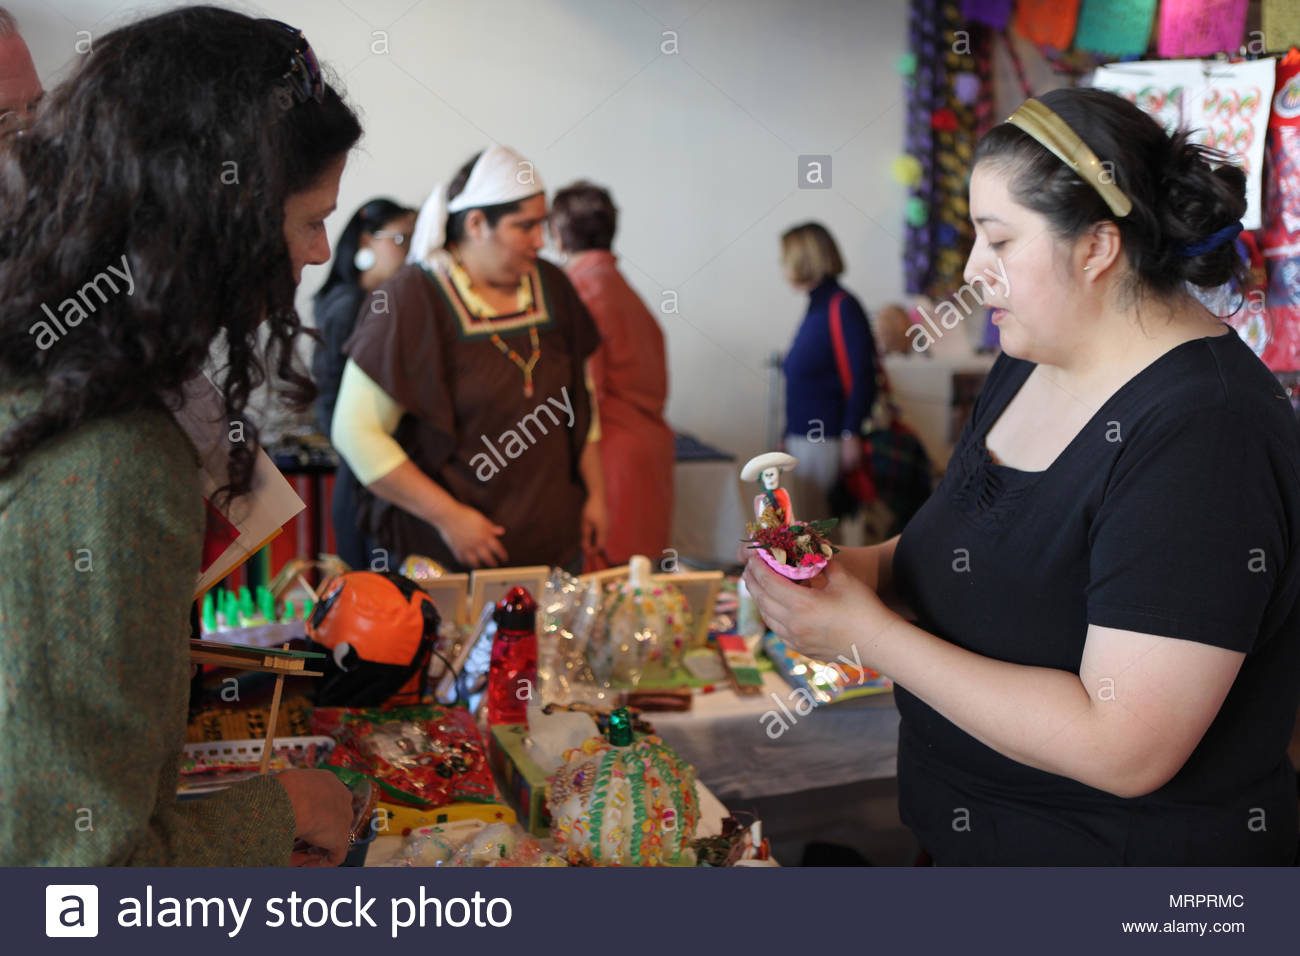 A woman selling a skeleton figure on the Day of the Dead. The Day of the Dead celebrations in Mexico is among the most important traditional religious - Stock Image